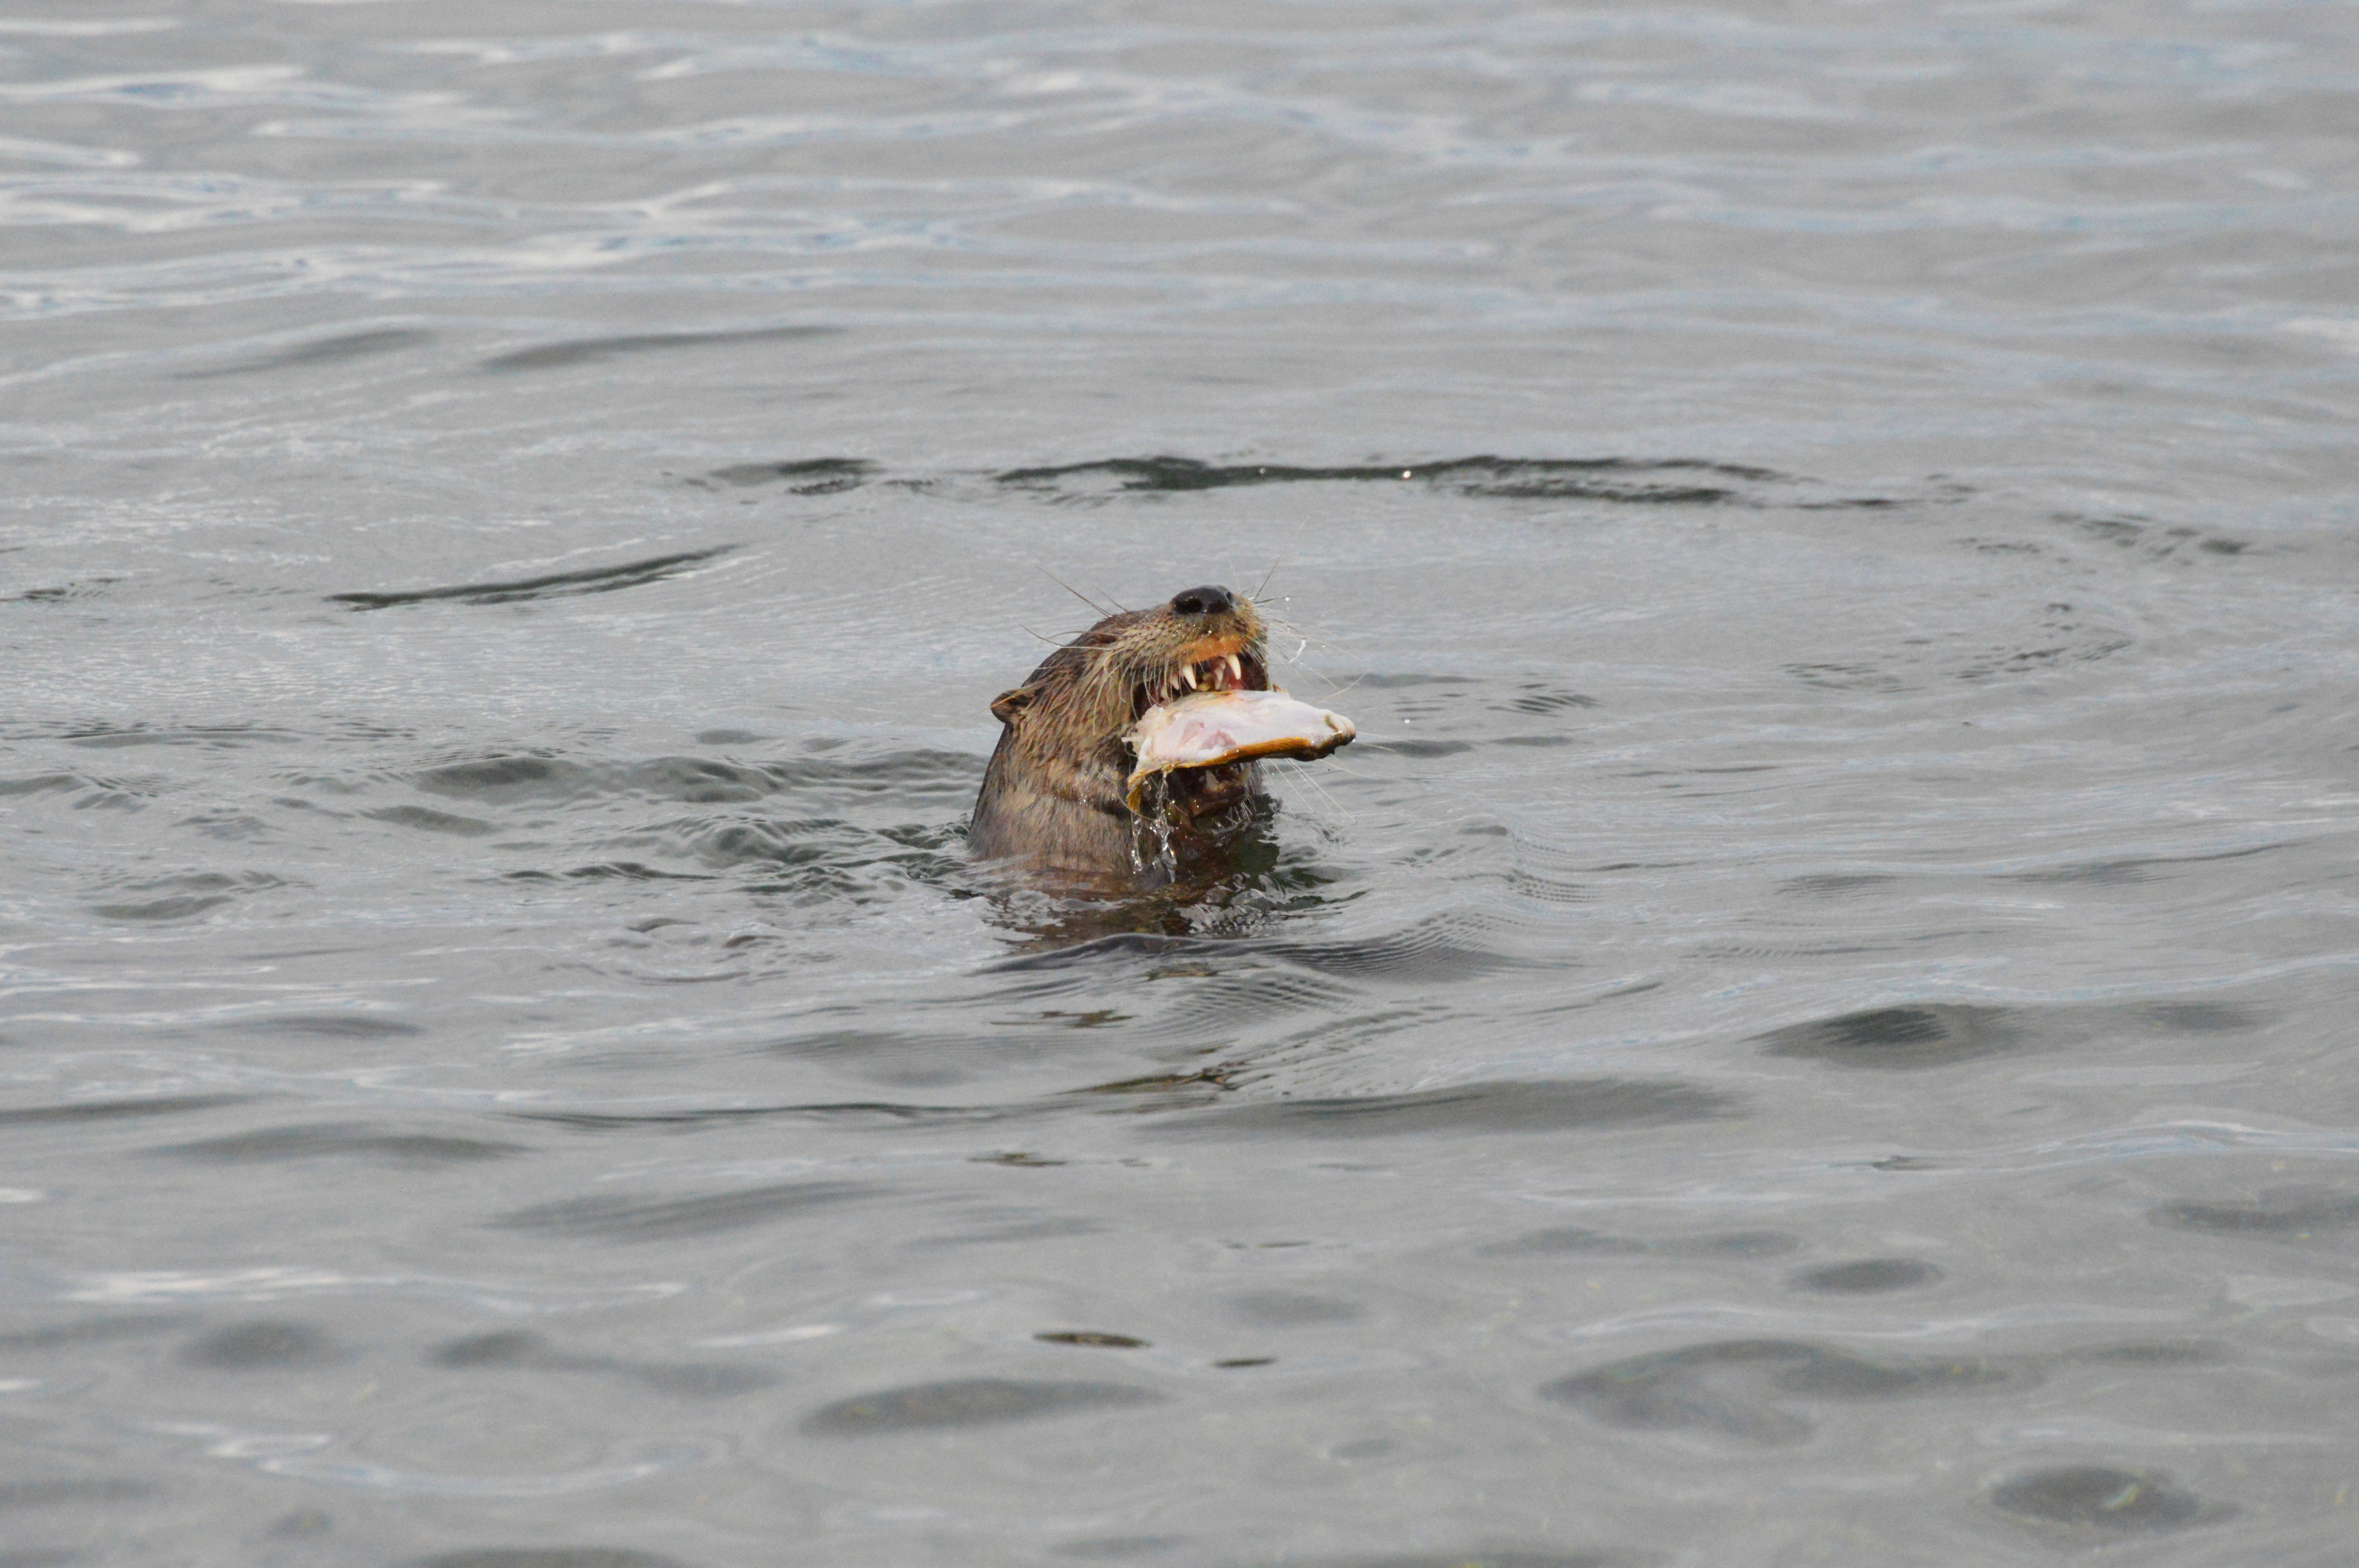 otters are vicious and terrifying creatures